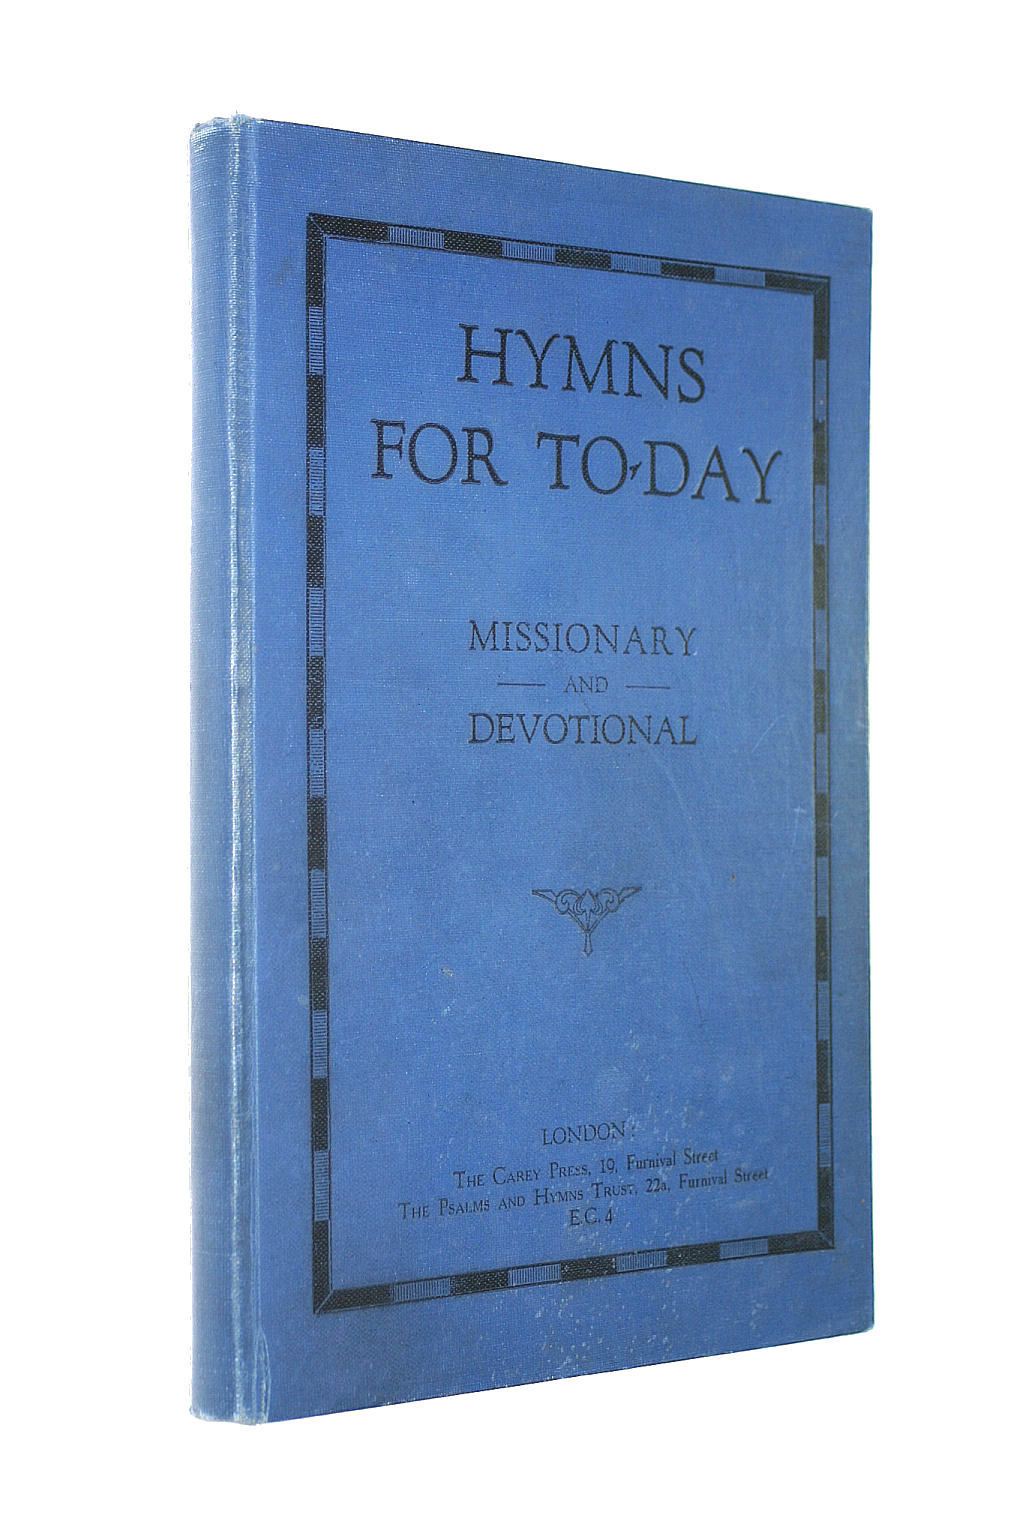 Image for HYMNS FOR TO-DAY missionary and devotional (words and music copy)